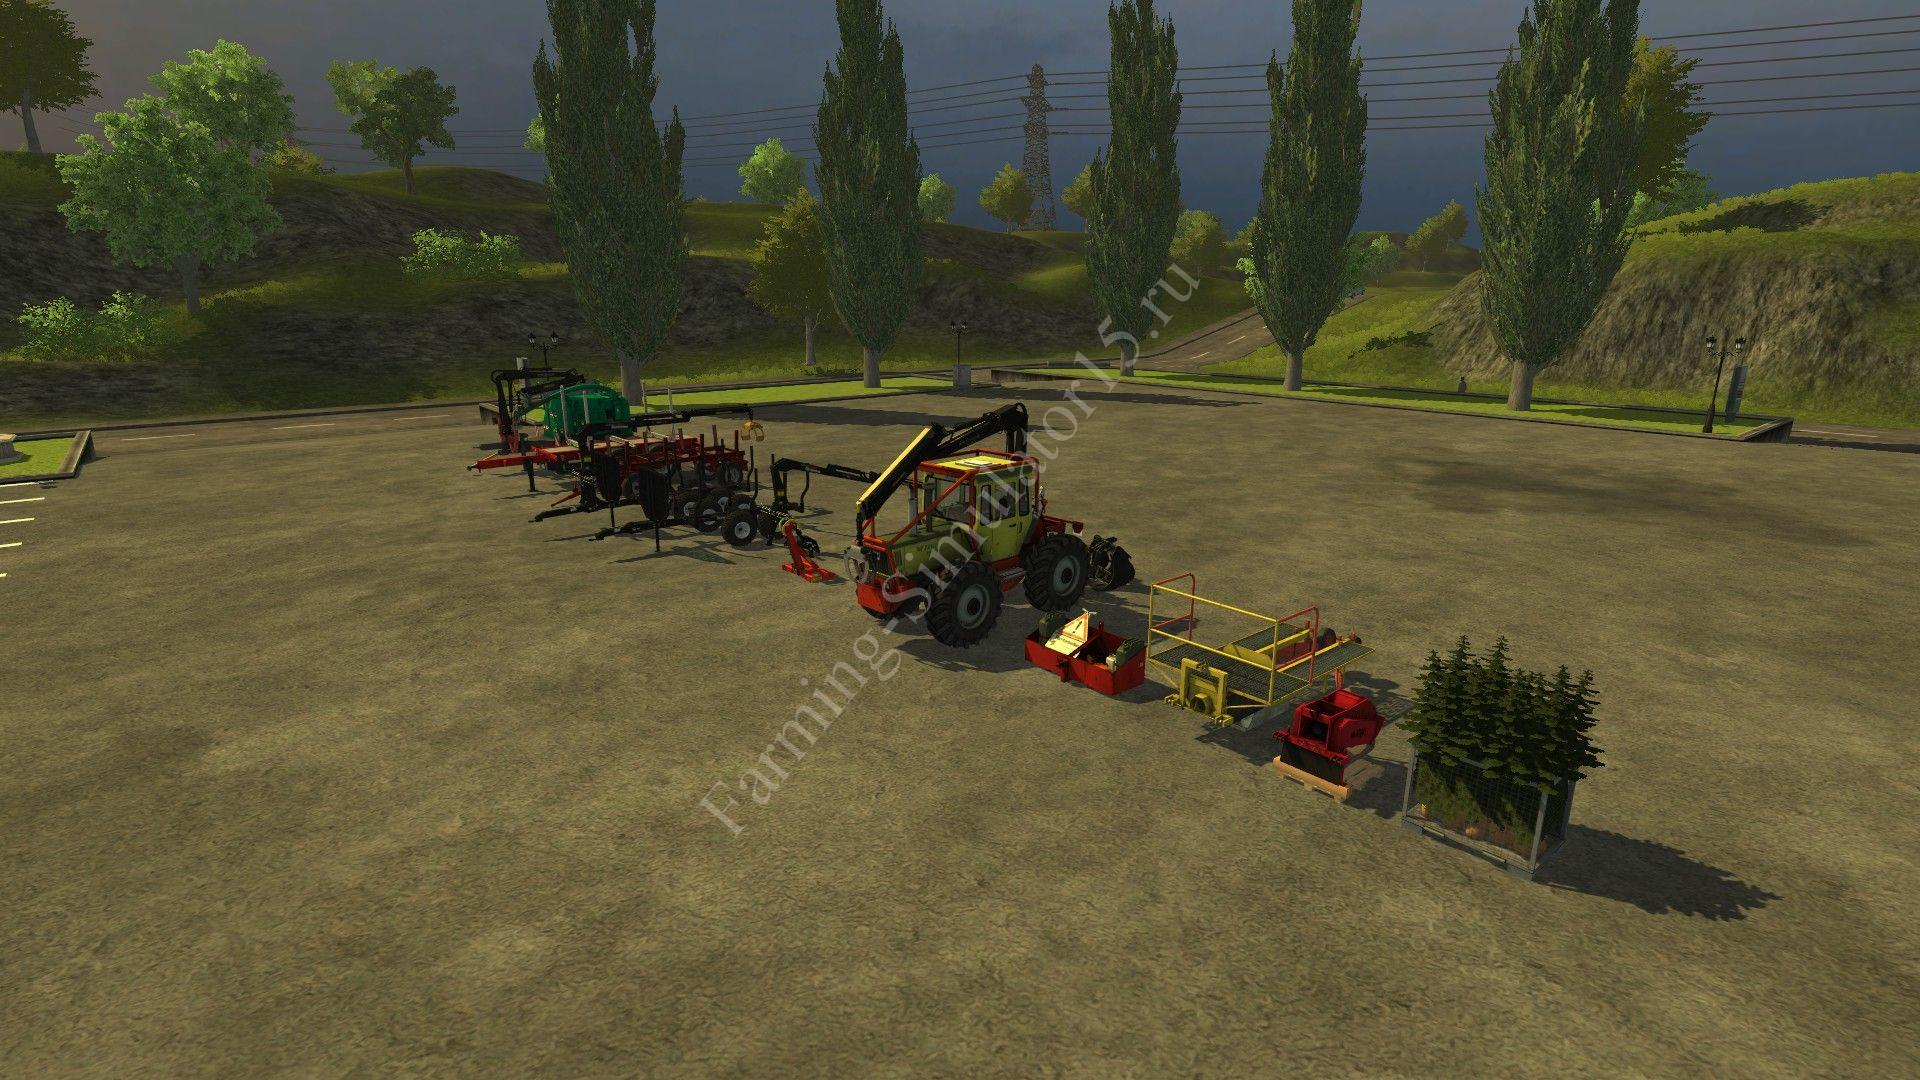 Forest Mod v 1.0 More Realistic Farming Simulator 2013, Farming Simulator 13